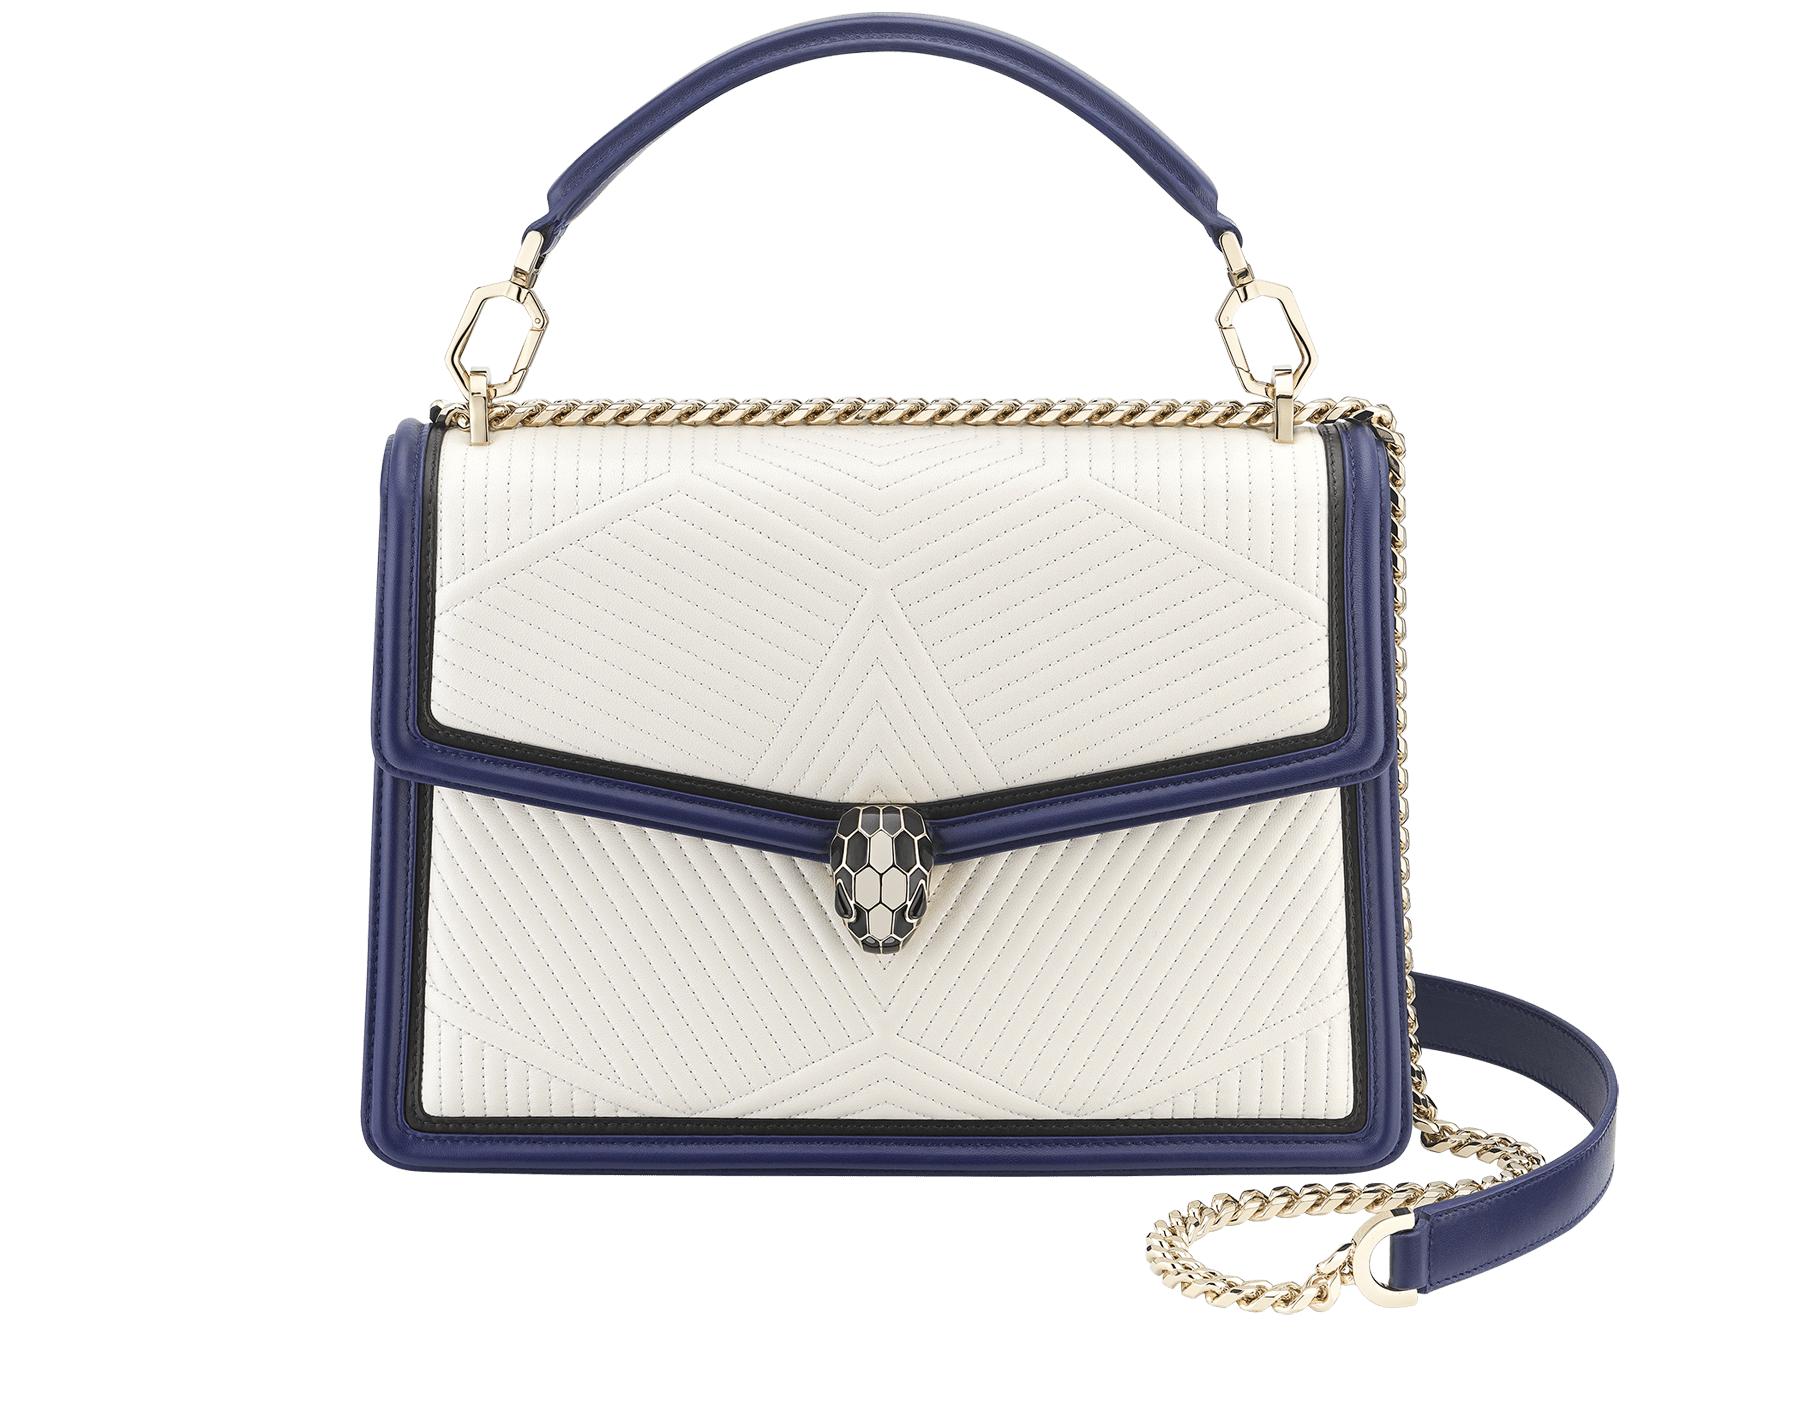 """Serpenti Diamond Blast"" shoulder bag in quilted, agate-white nappa leather with Royal Sapphire blue and black calfskin edging and Royal Sapphire blue nappa leather inner lining. Iconic snakehead closure in light gold-plated brass embellished with black and agate-white enamel and black onyx eyes. 973-FQDa image 1"